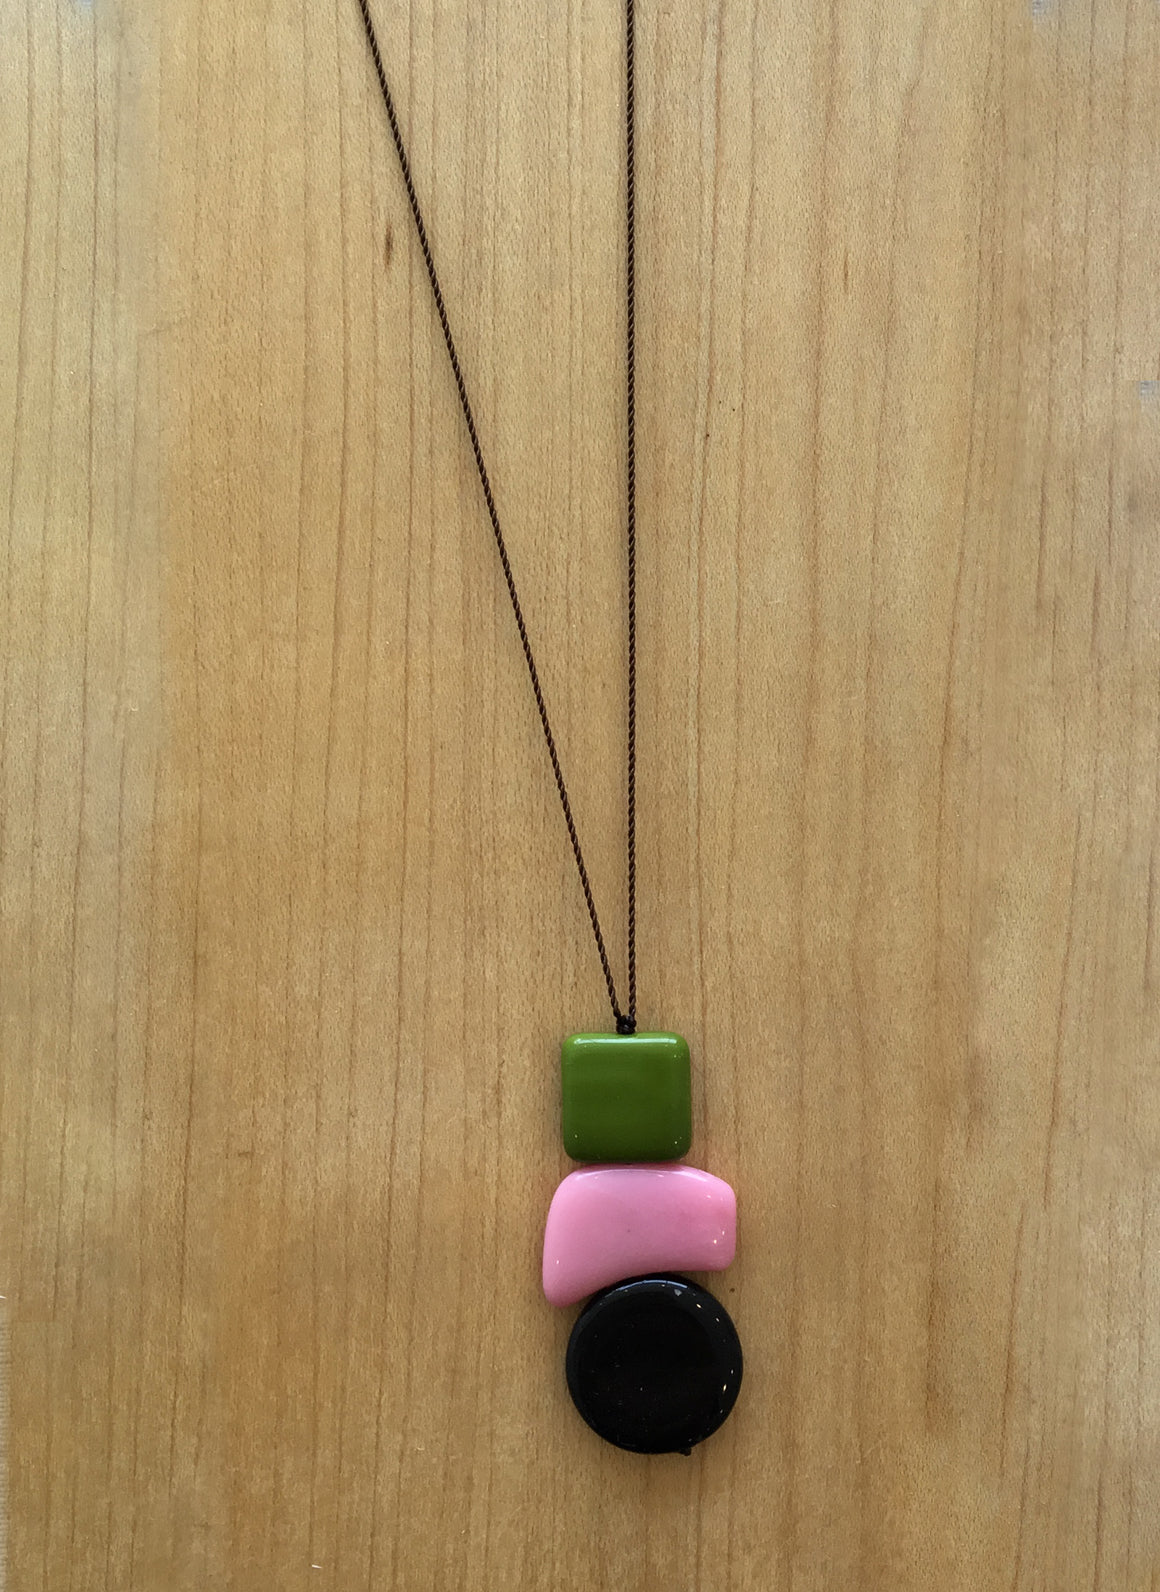 I. Ronni Kappos Modernist Stack with Pink Necklace